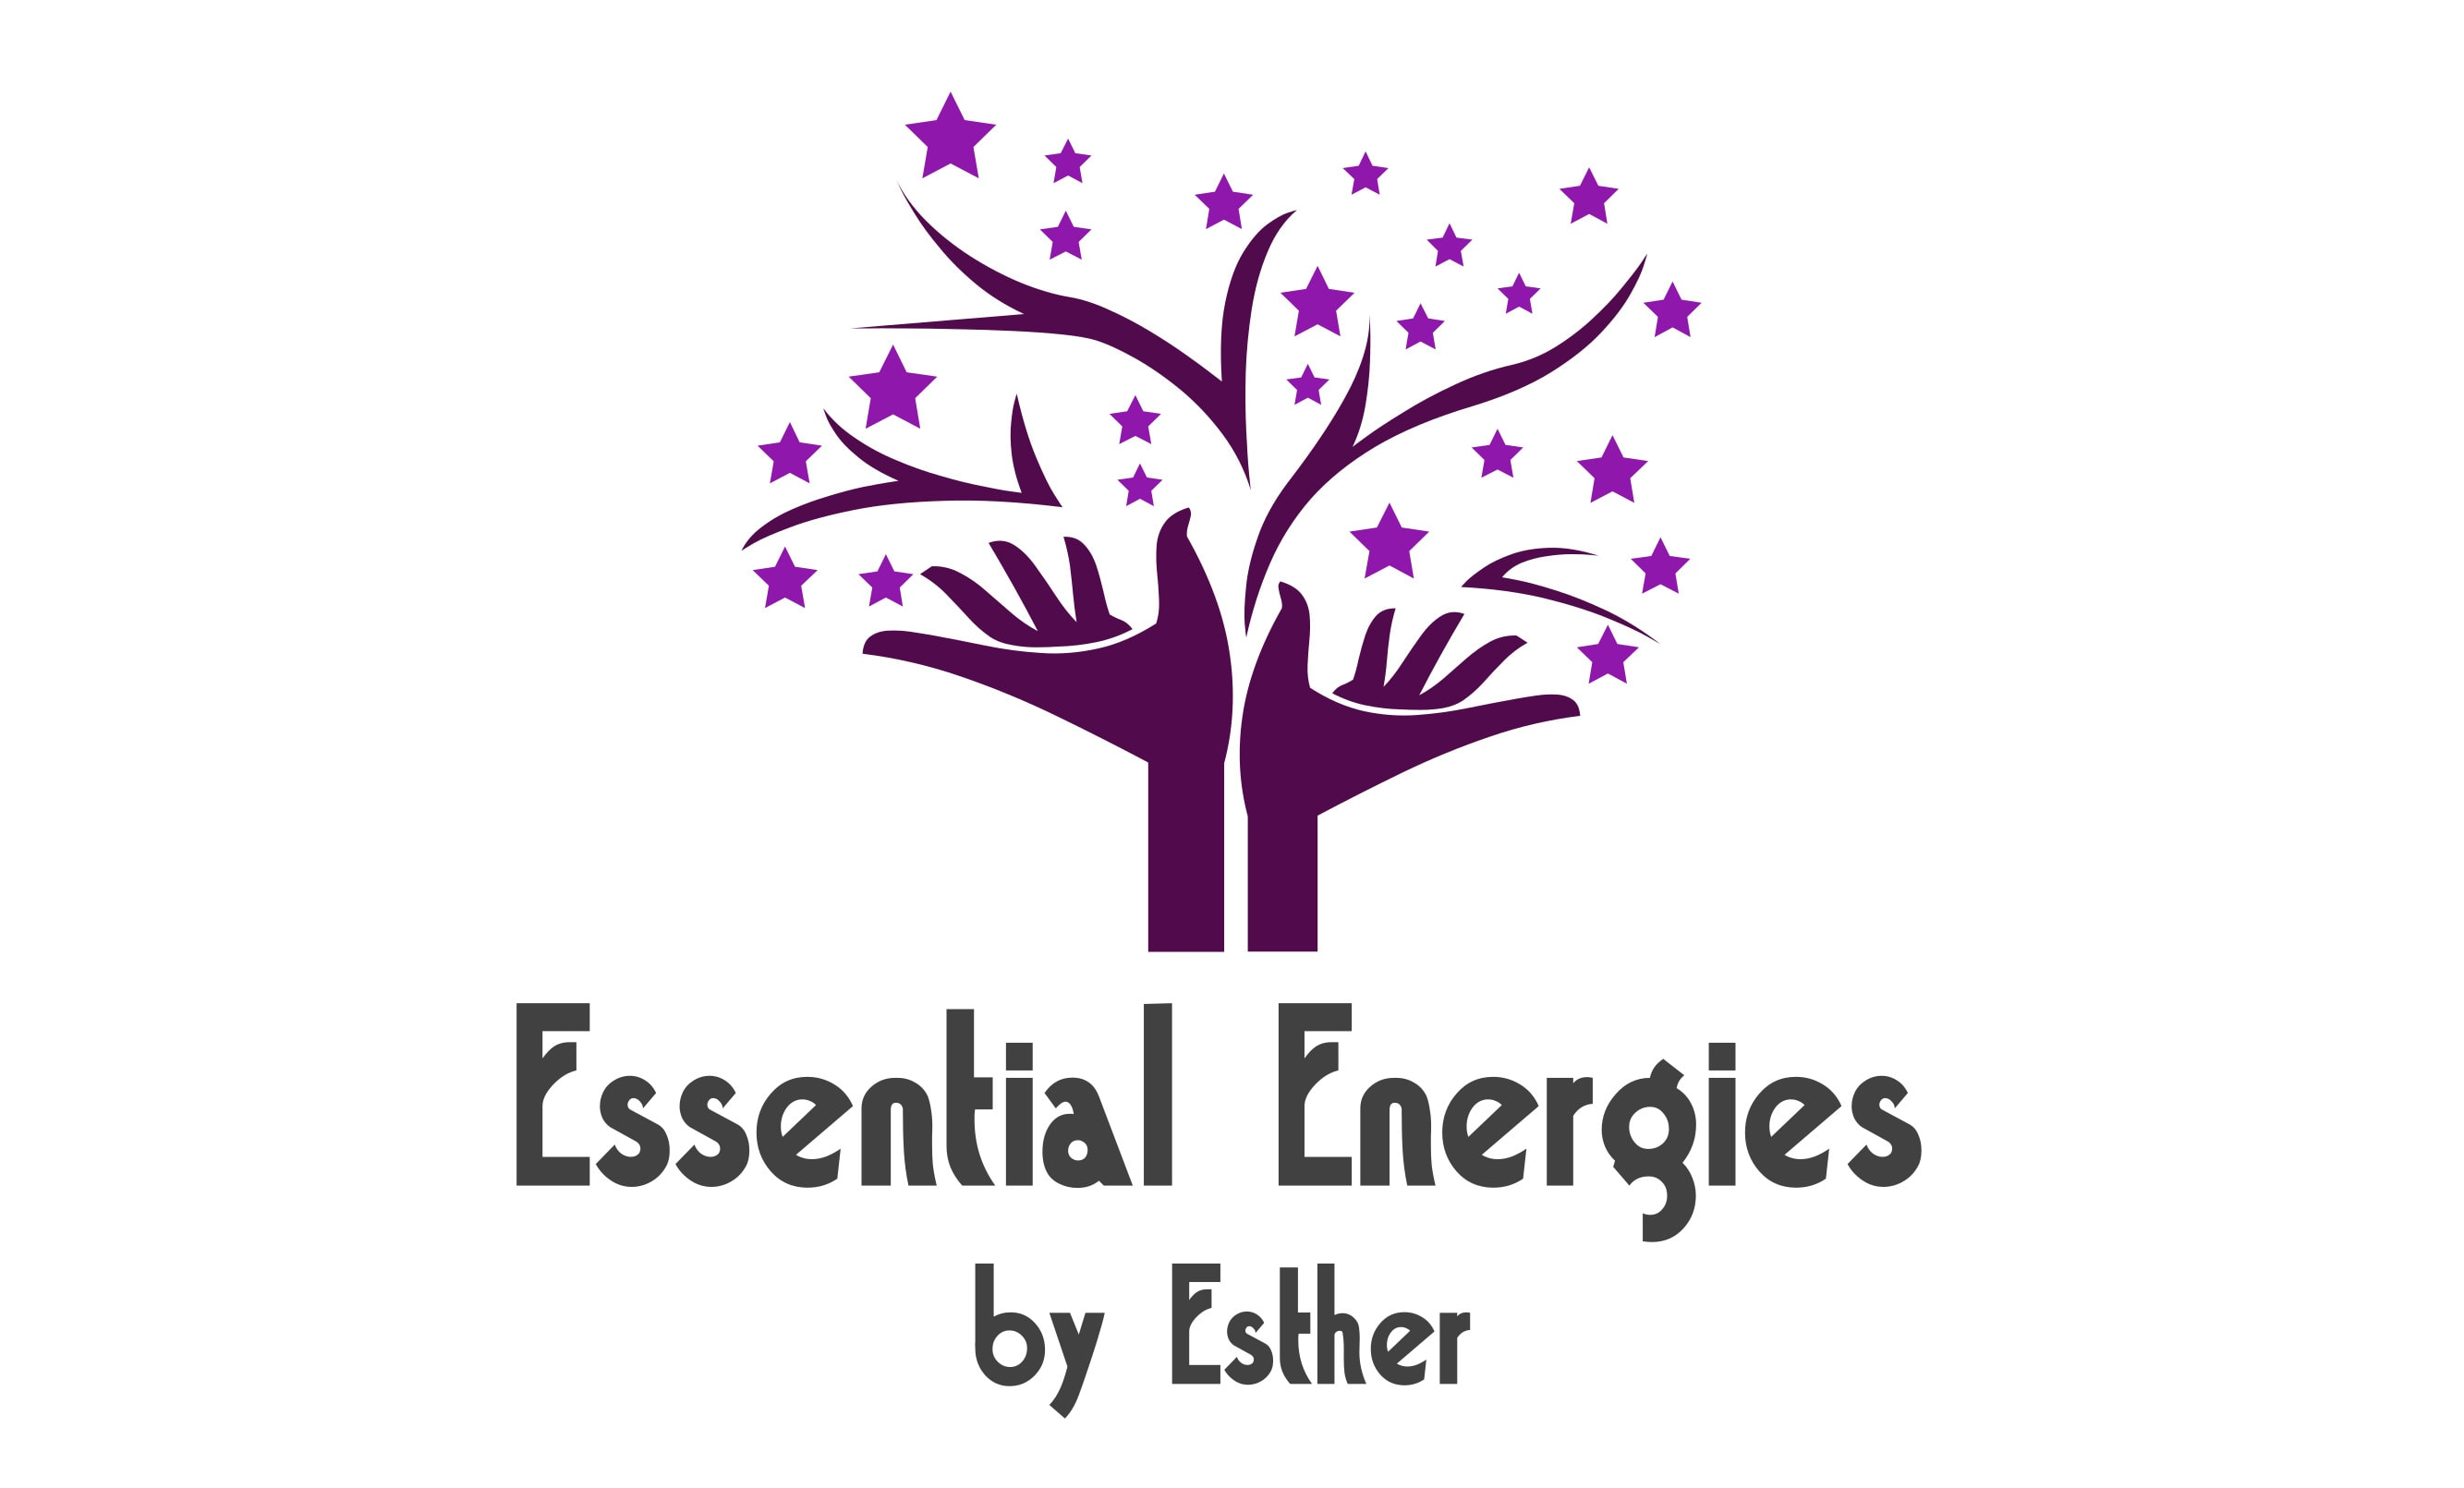 Essential Energies by Esther